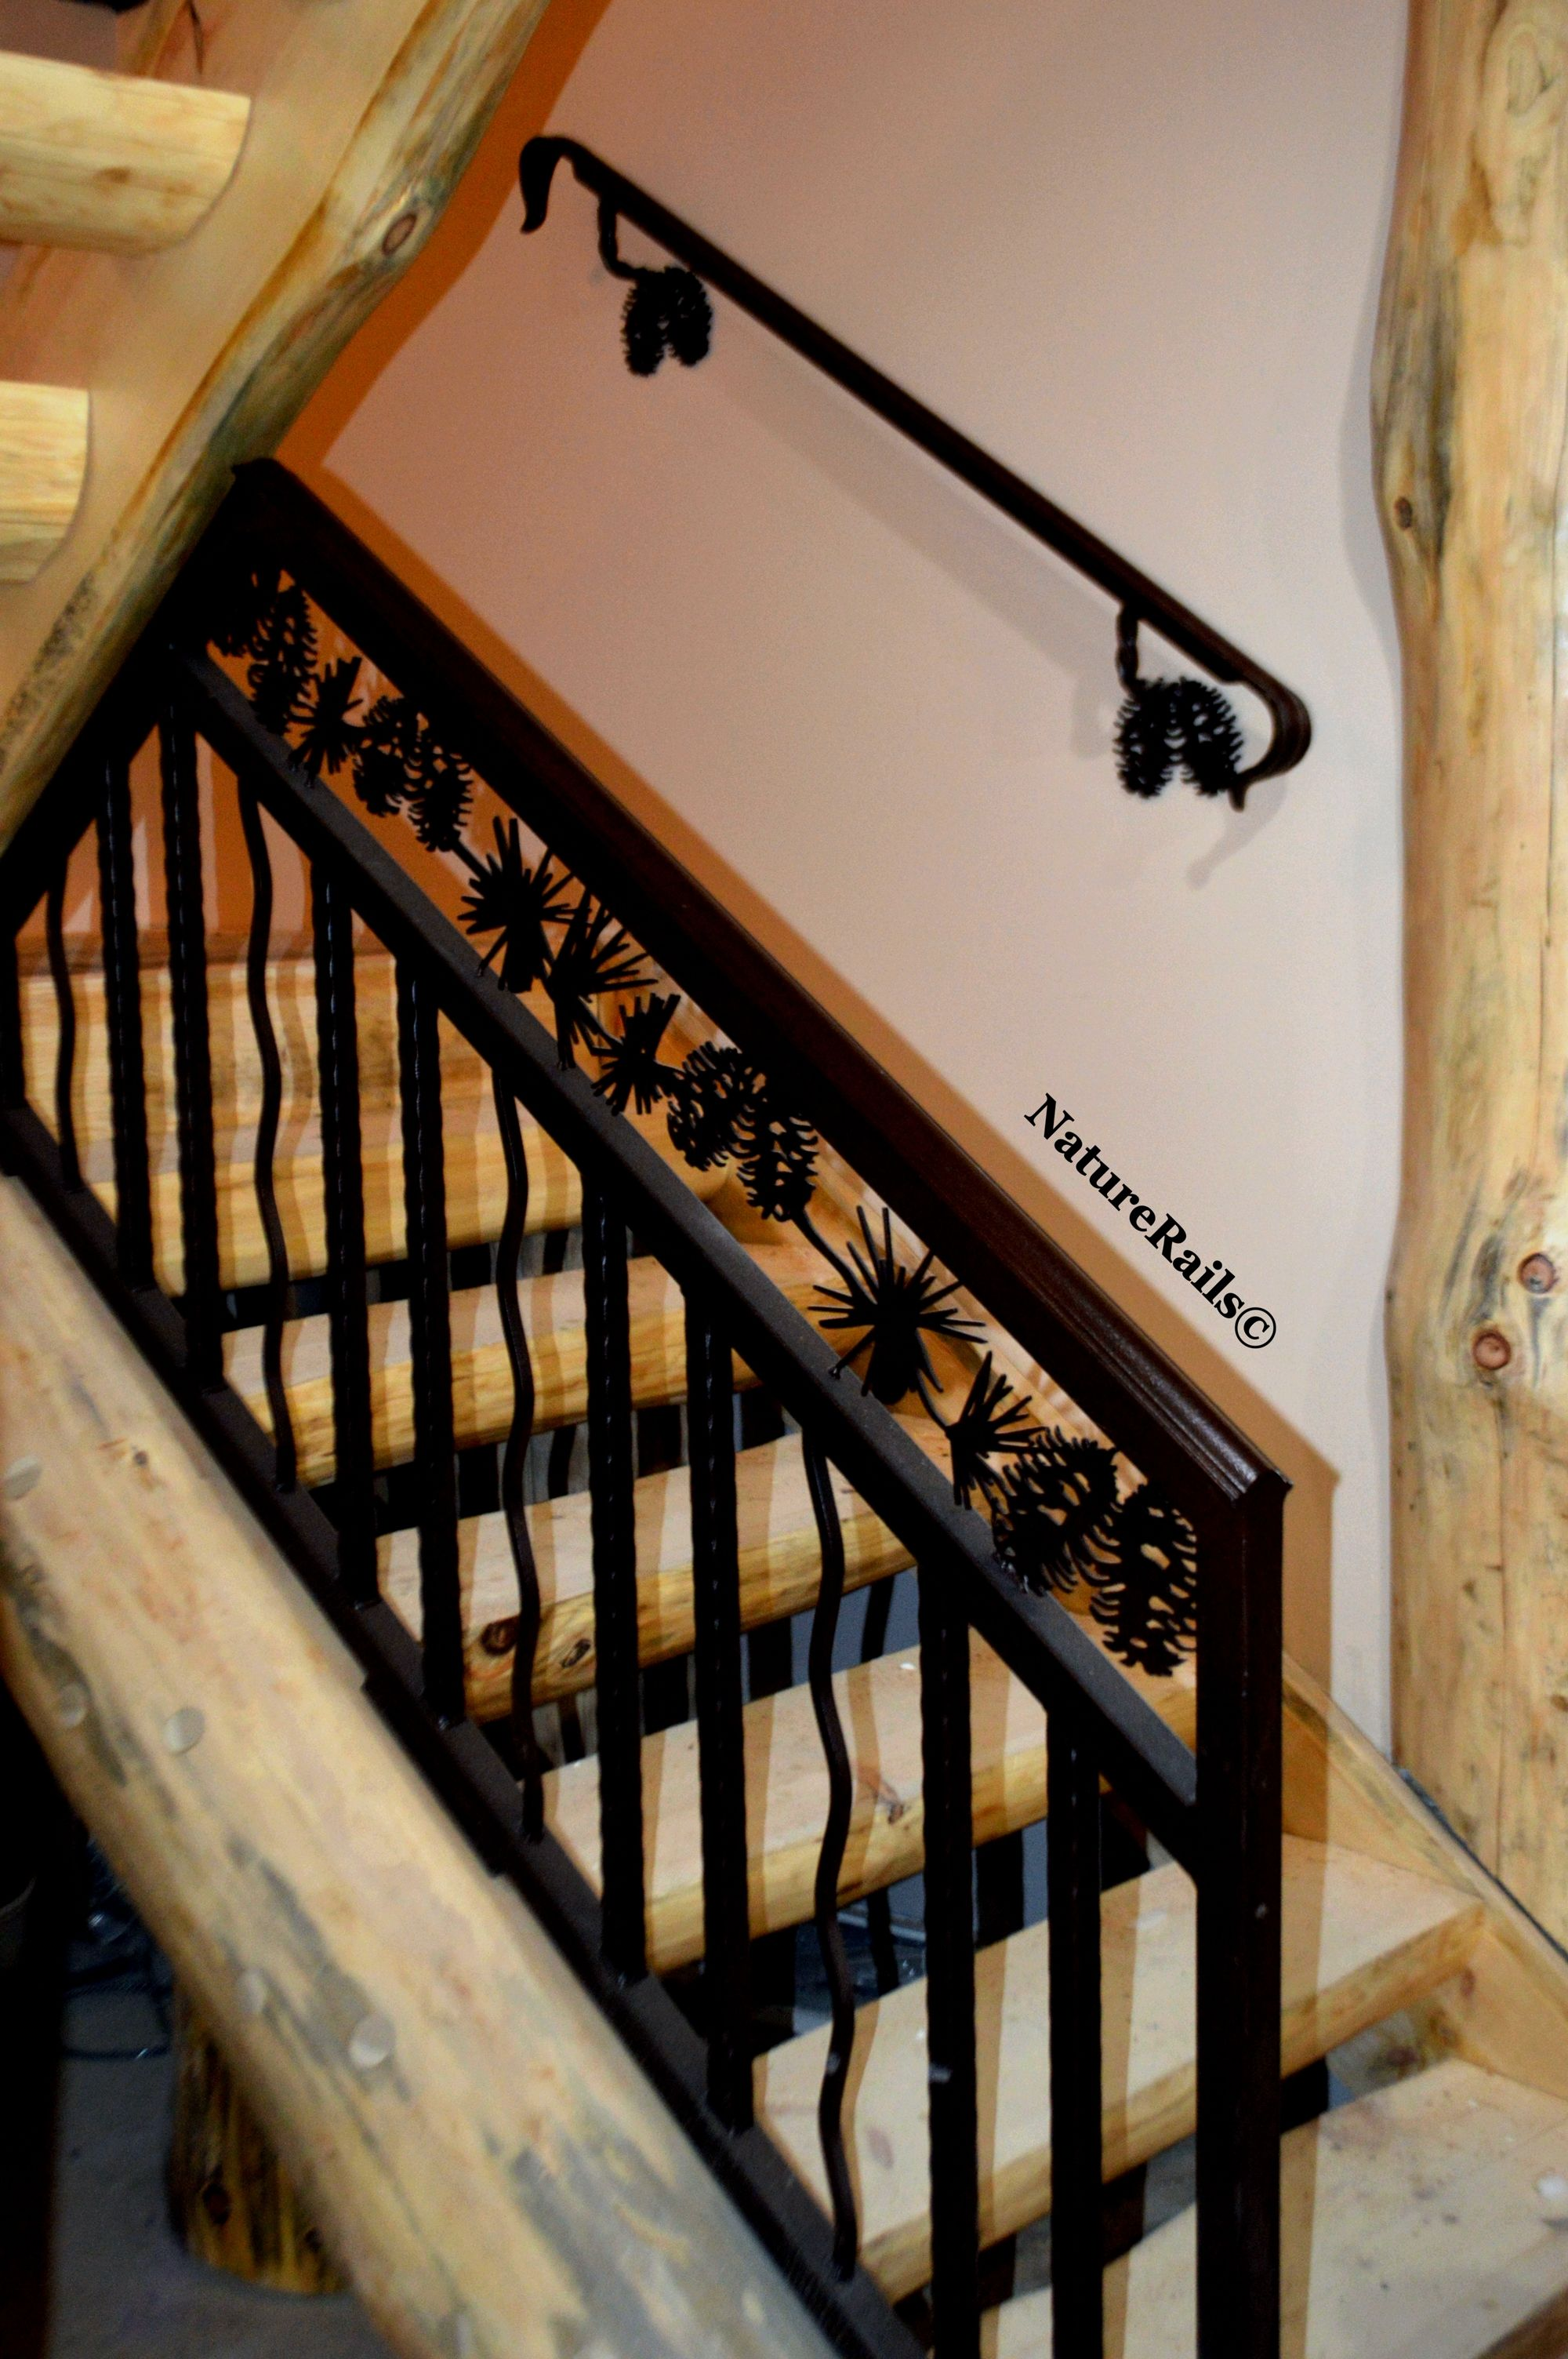 Custom Stair #railing With Spindles And Pine Cone Border. Powder Coated  Steel Means No Maintenance Or Painting Ever With Easy Installation.